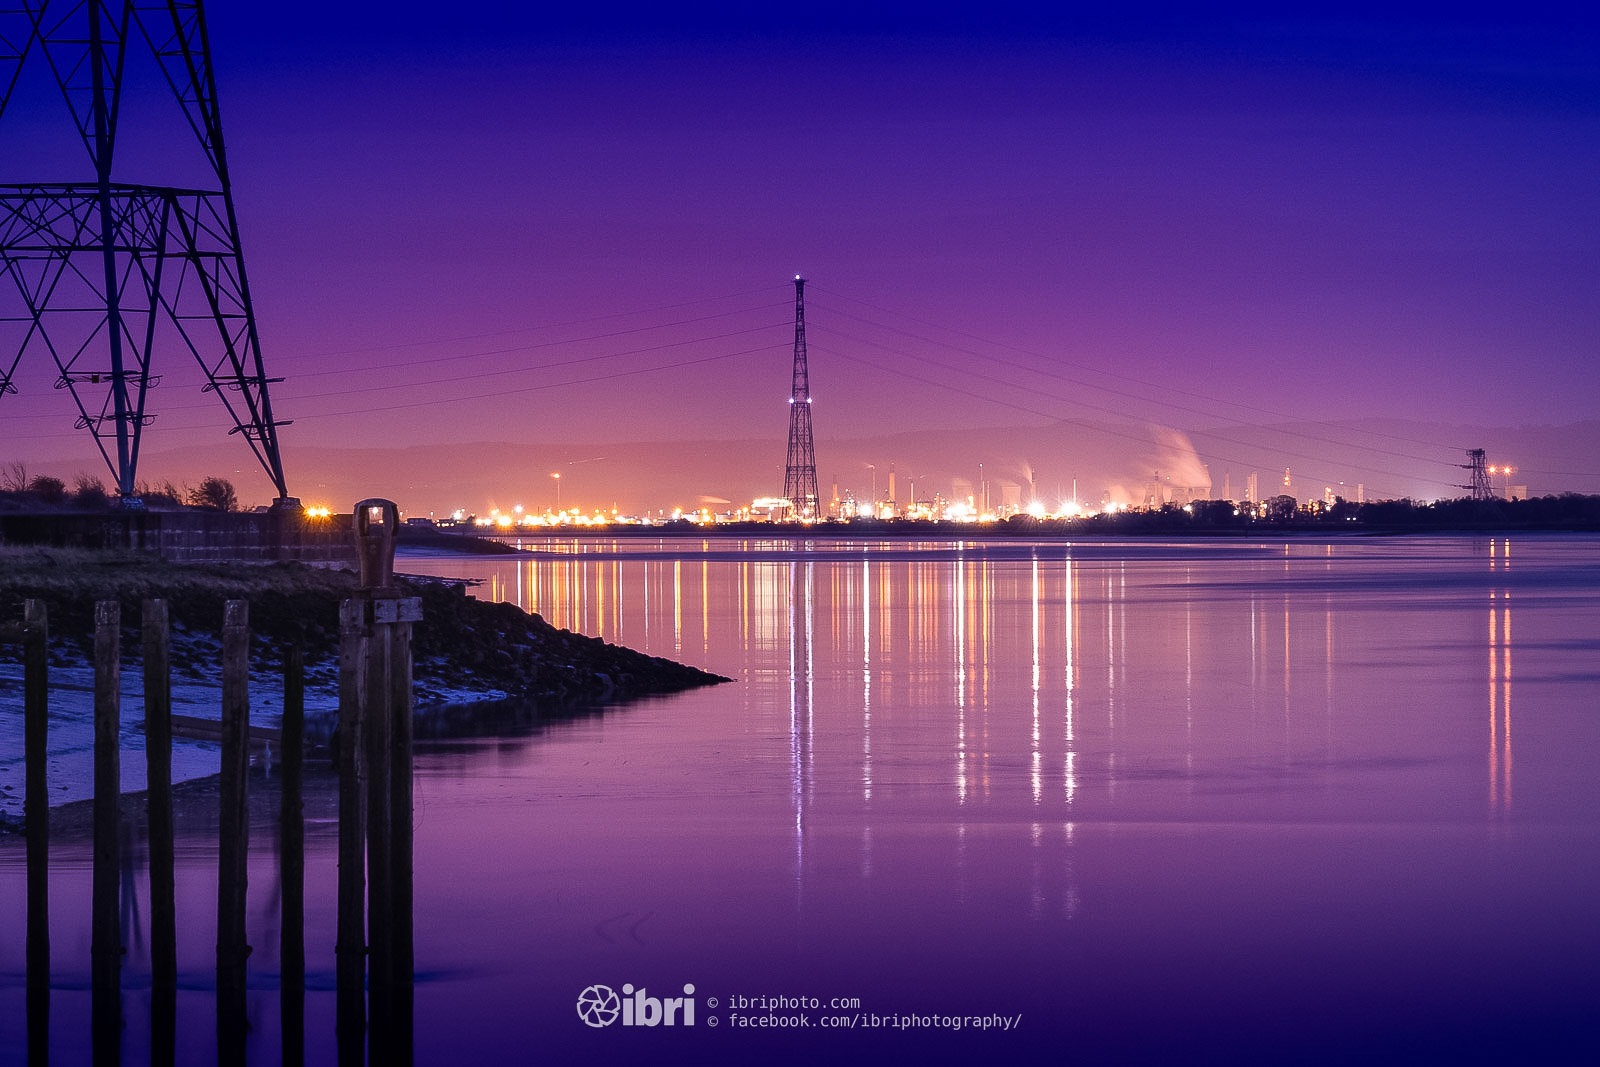 Lookin east from the harbour towards the hive of industry up river at Grangemouth.